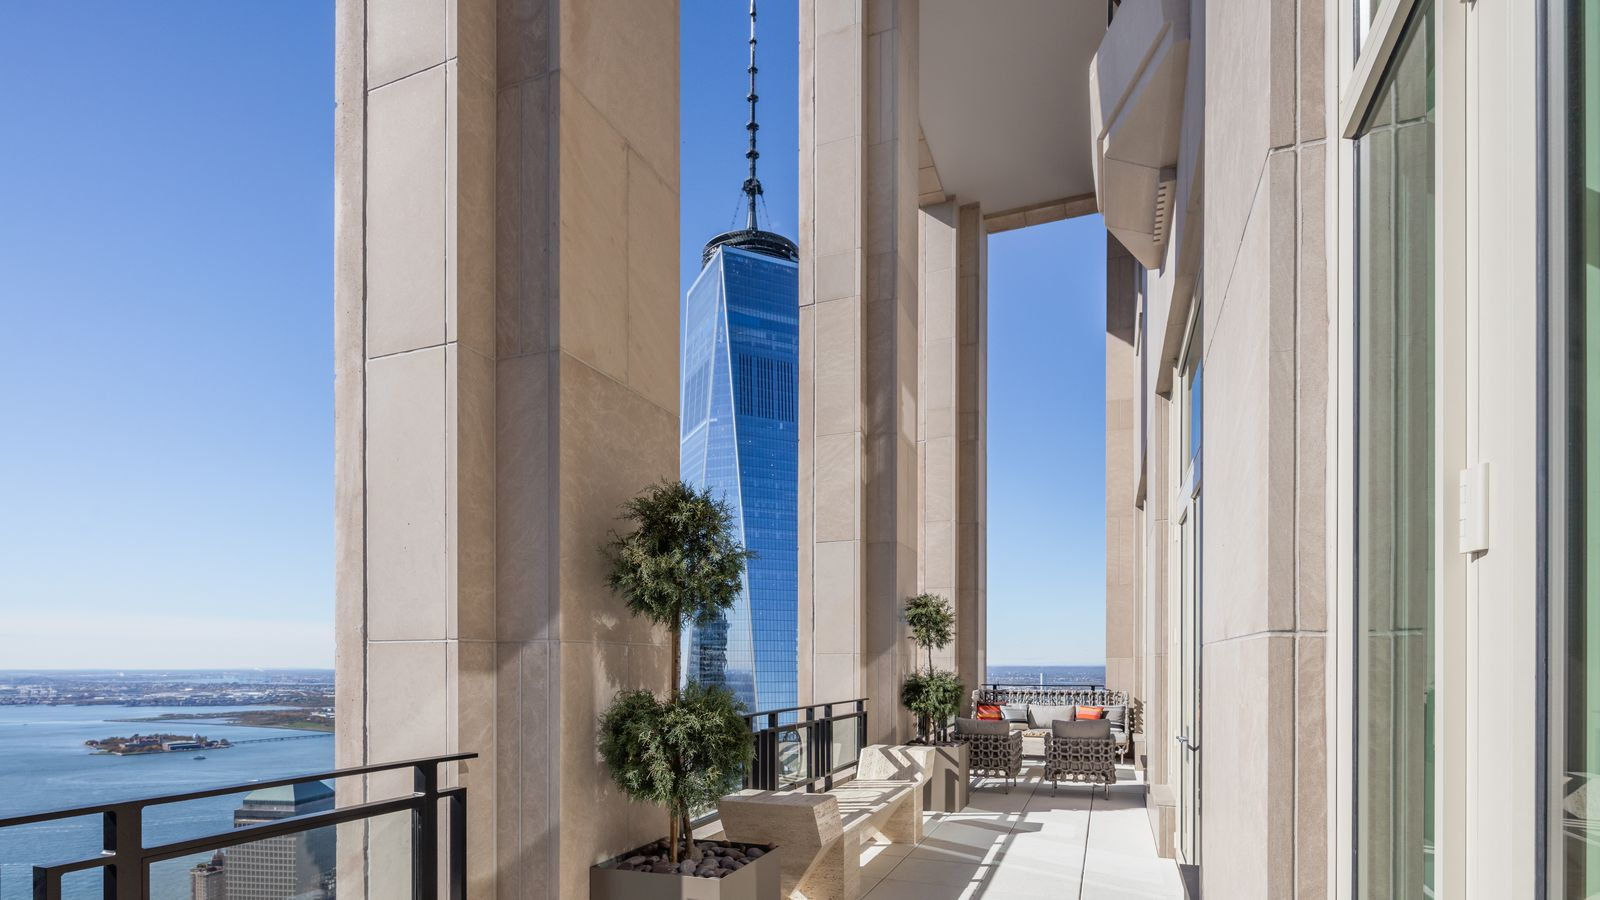 Robert AM Sterns 30 Park Place reveals a 295M